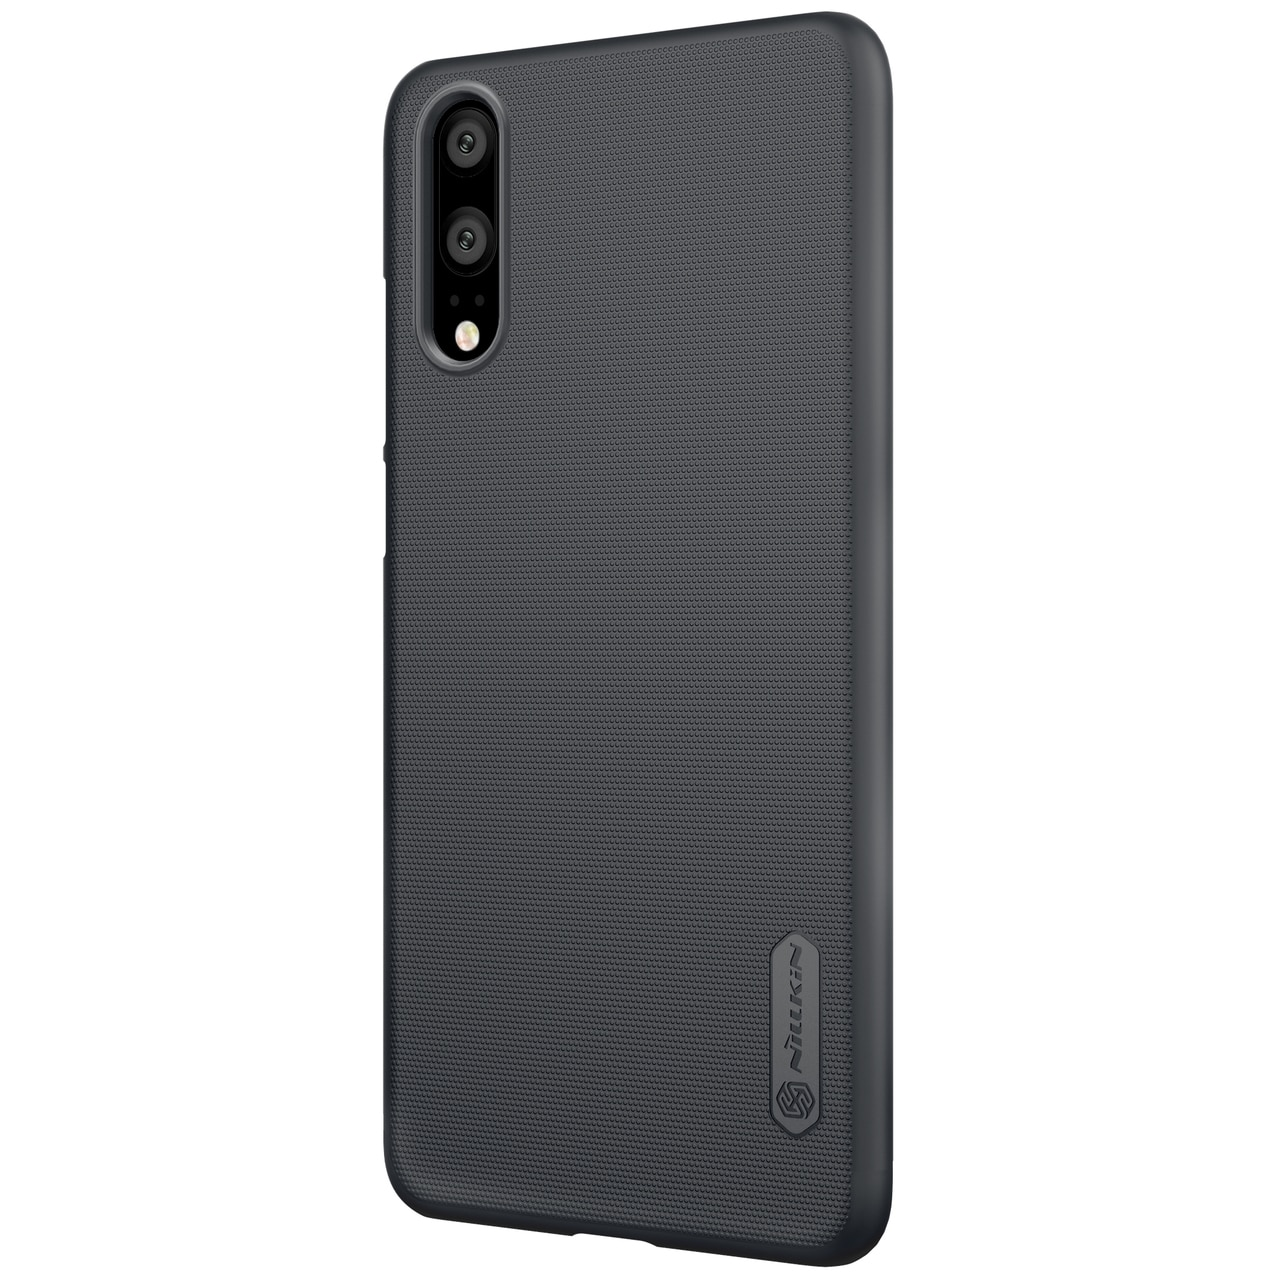 Huawei P20 Frosted Shield Hard Back Cover by Nillkin - Black